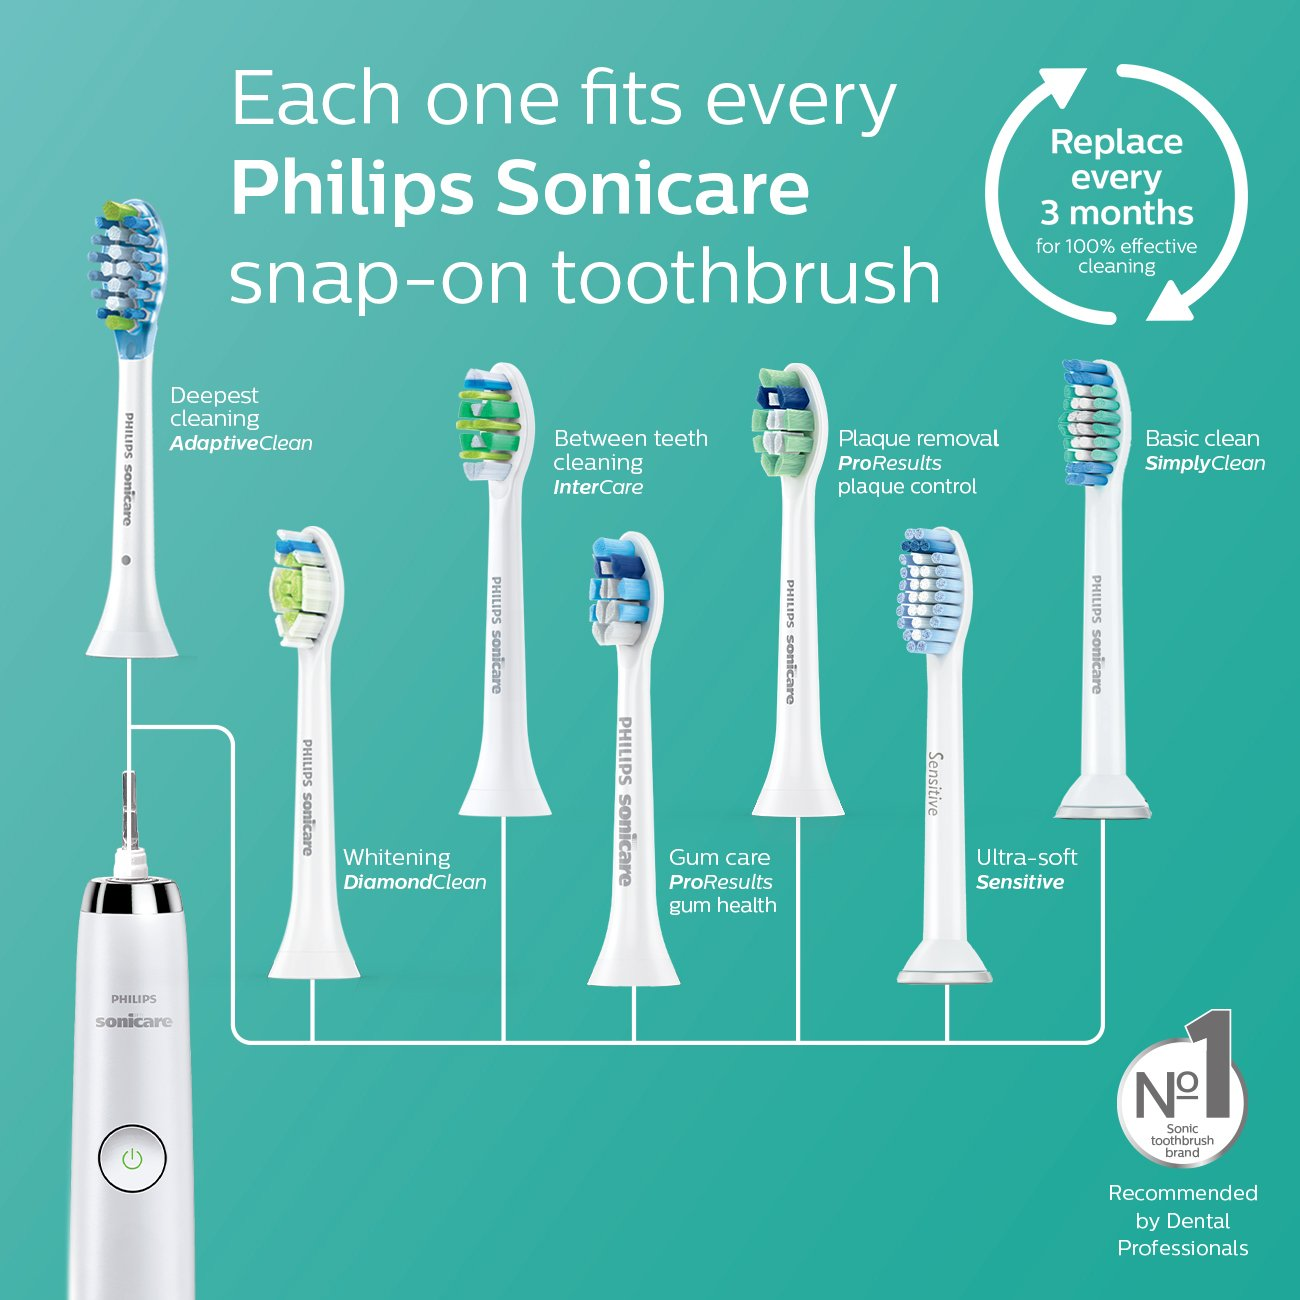 Philips Sonicare Diamond Clean Rechargeable Toothbrush w/Deep Clean Mode with Adaptive Clean Brush Head, Pearly White by Philips Sonicare (Image #4)